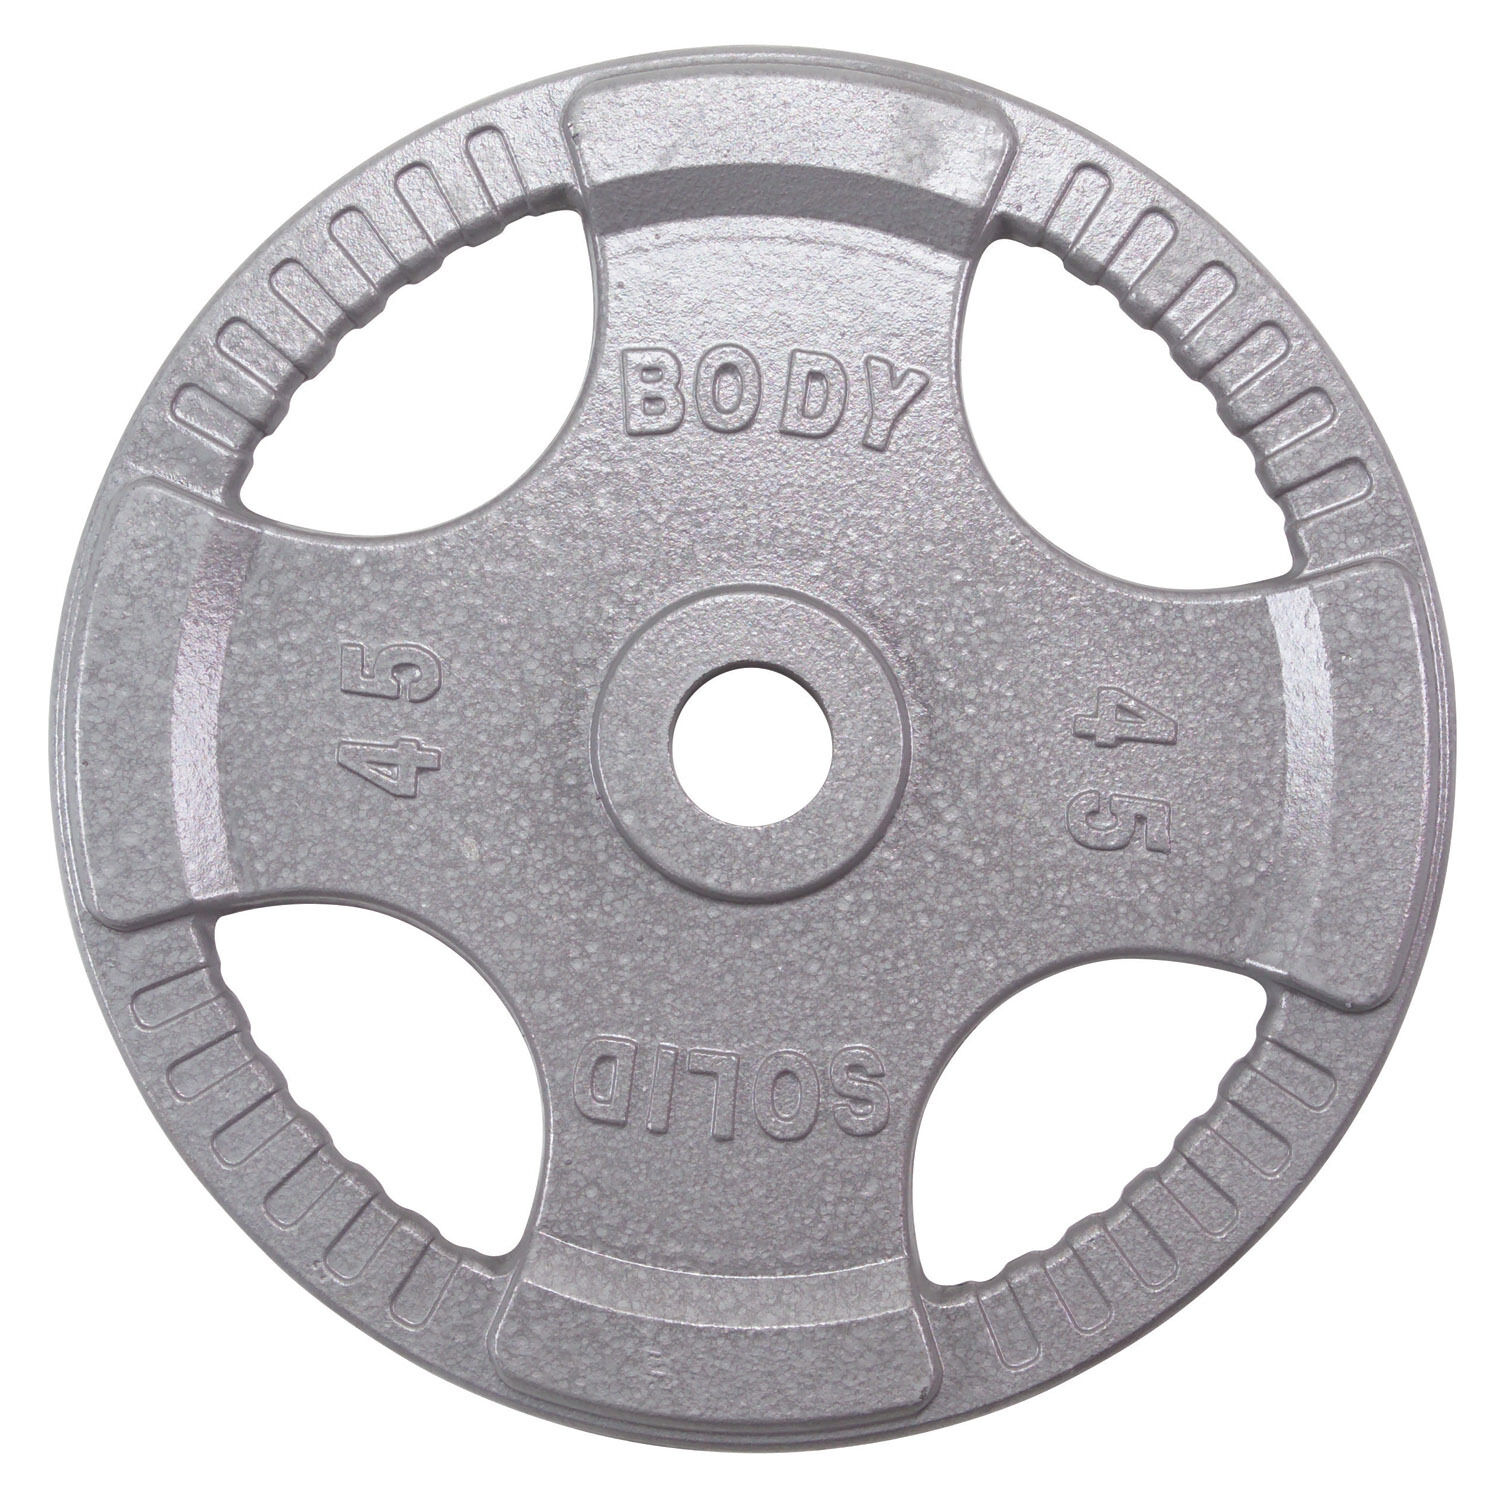 455 lbs.  of Steel Grip Weight Plates - Item  OST455 Body-Solid  online discount